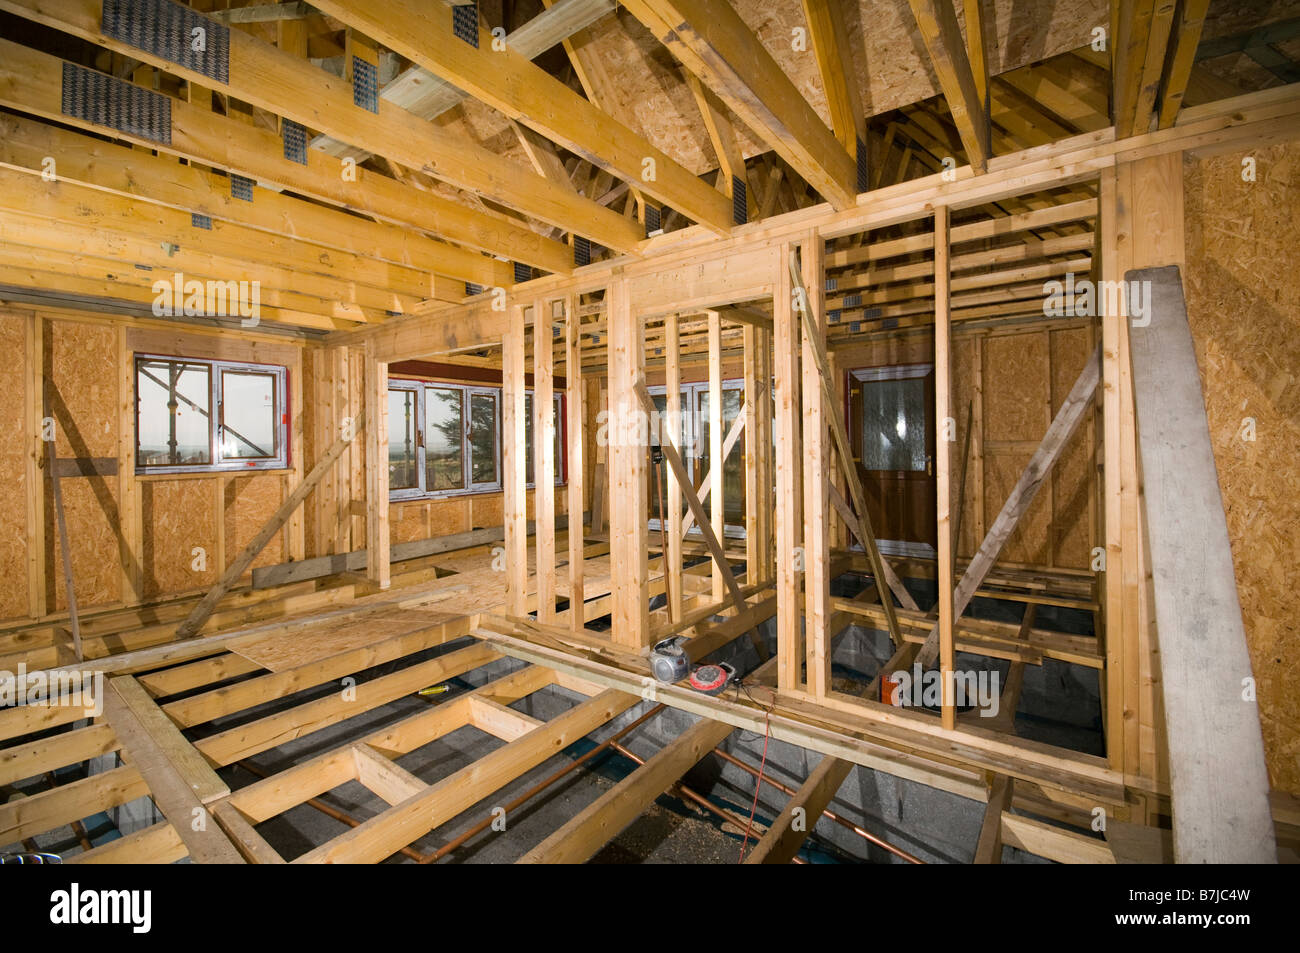 Interior of a timber framed house under construction in for Timber frame house construction